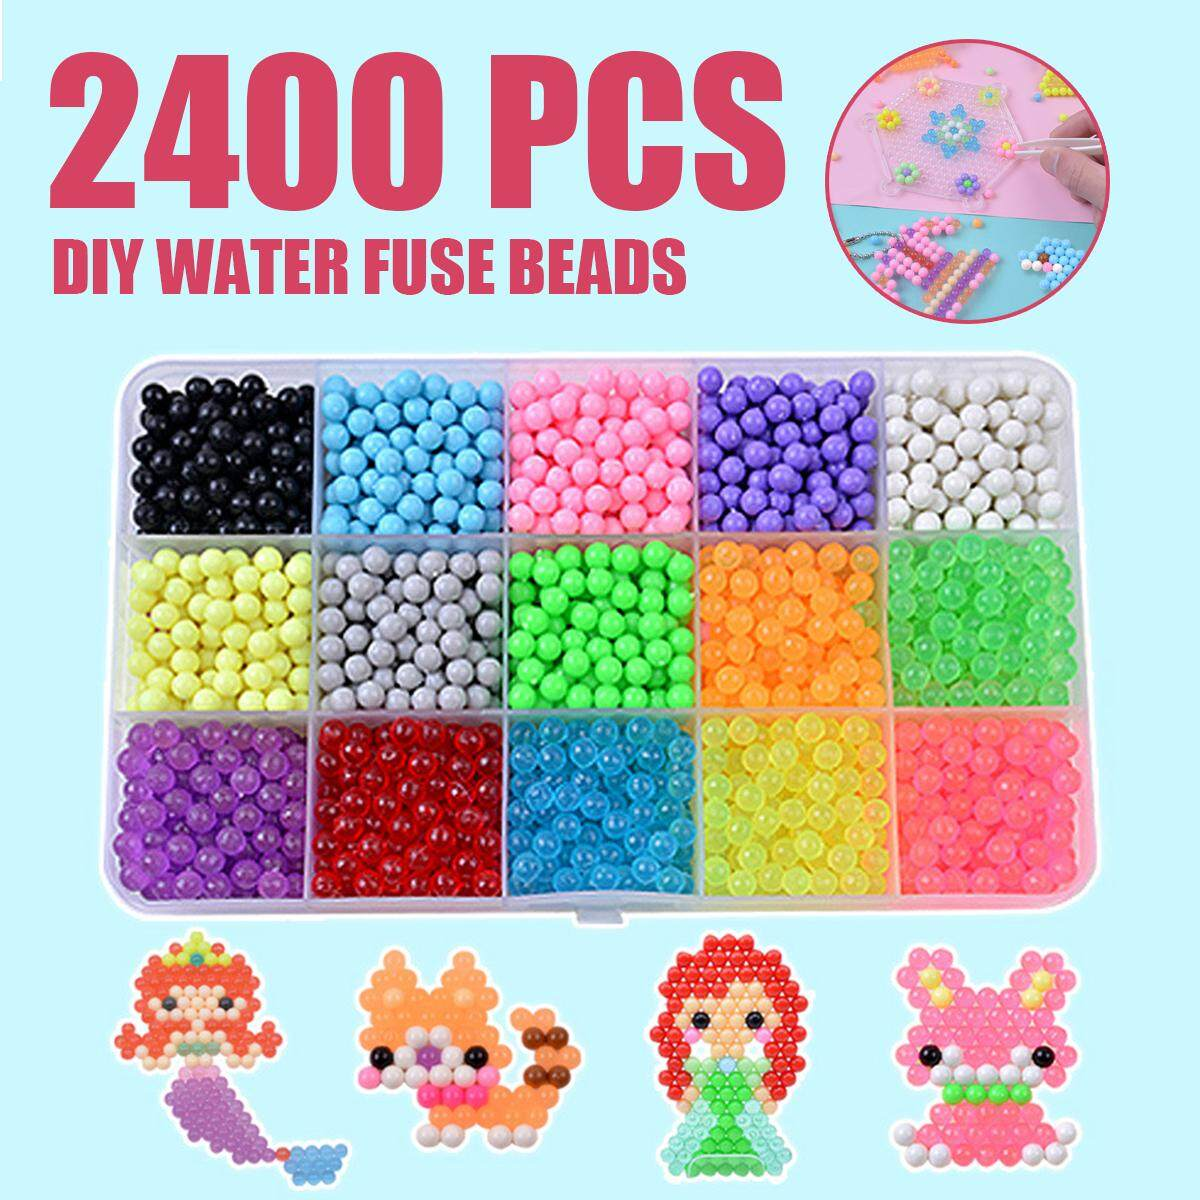 2400pcs Diy Handmade Boy Girl Toy Magic Water Mist Magic Beads Water Sticky Beads Spell Bean Bean Magic Beads By Teamwin.